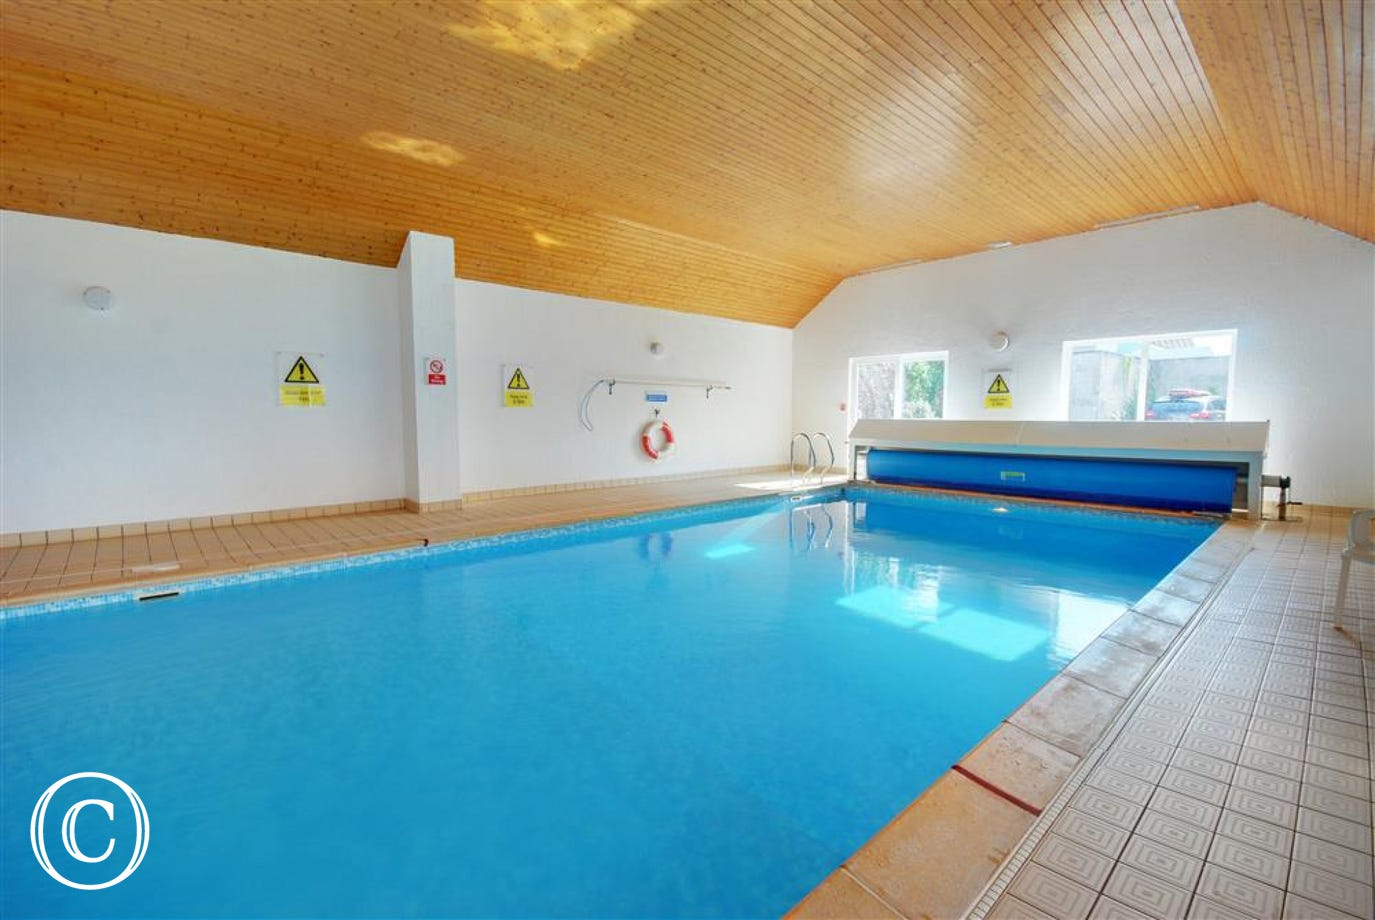 Indoor Clifton Court Swimming Pool - View 2